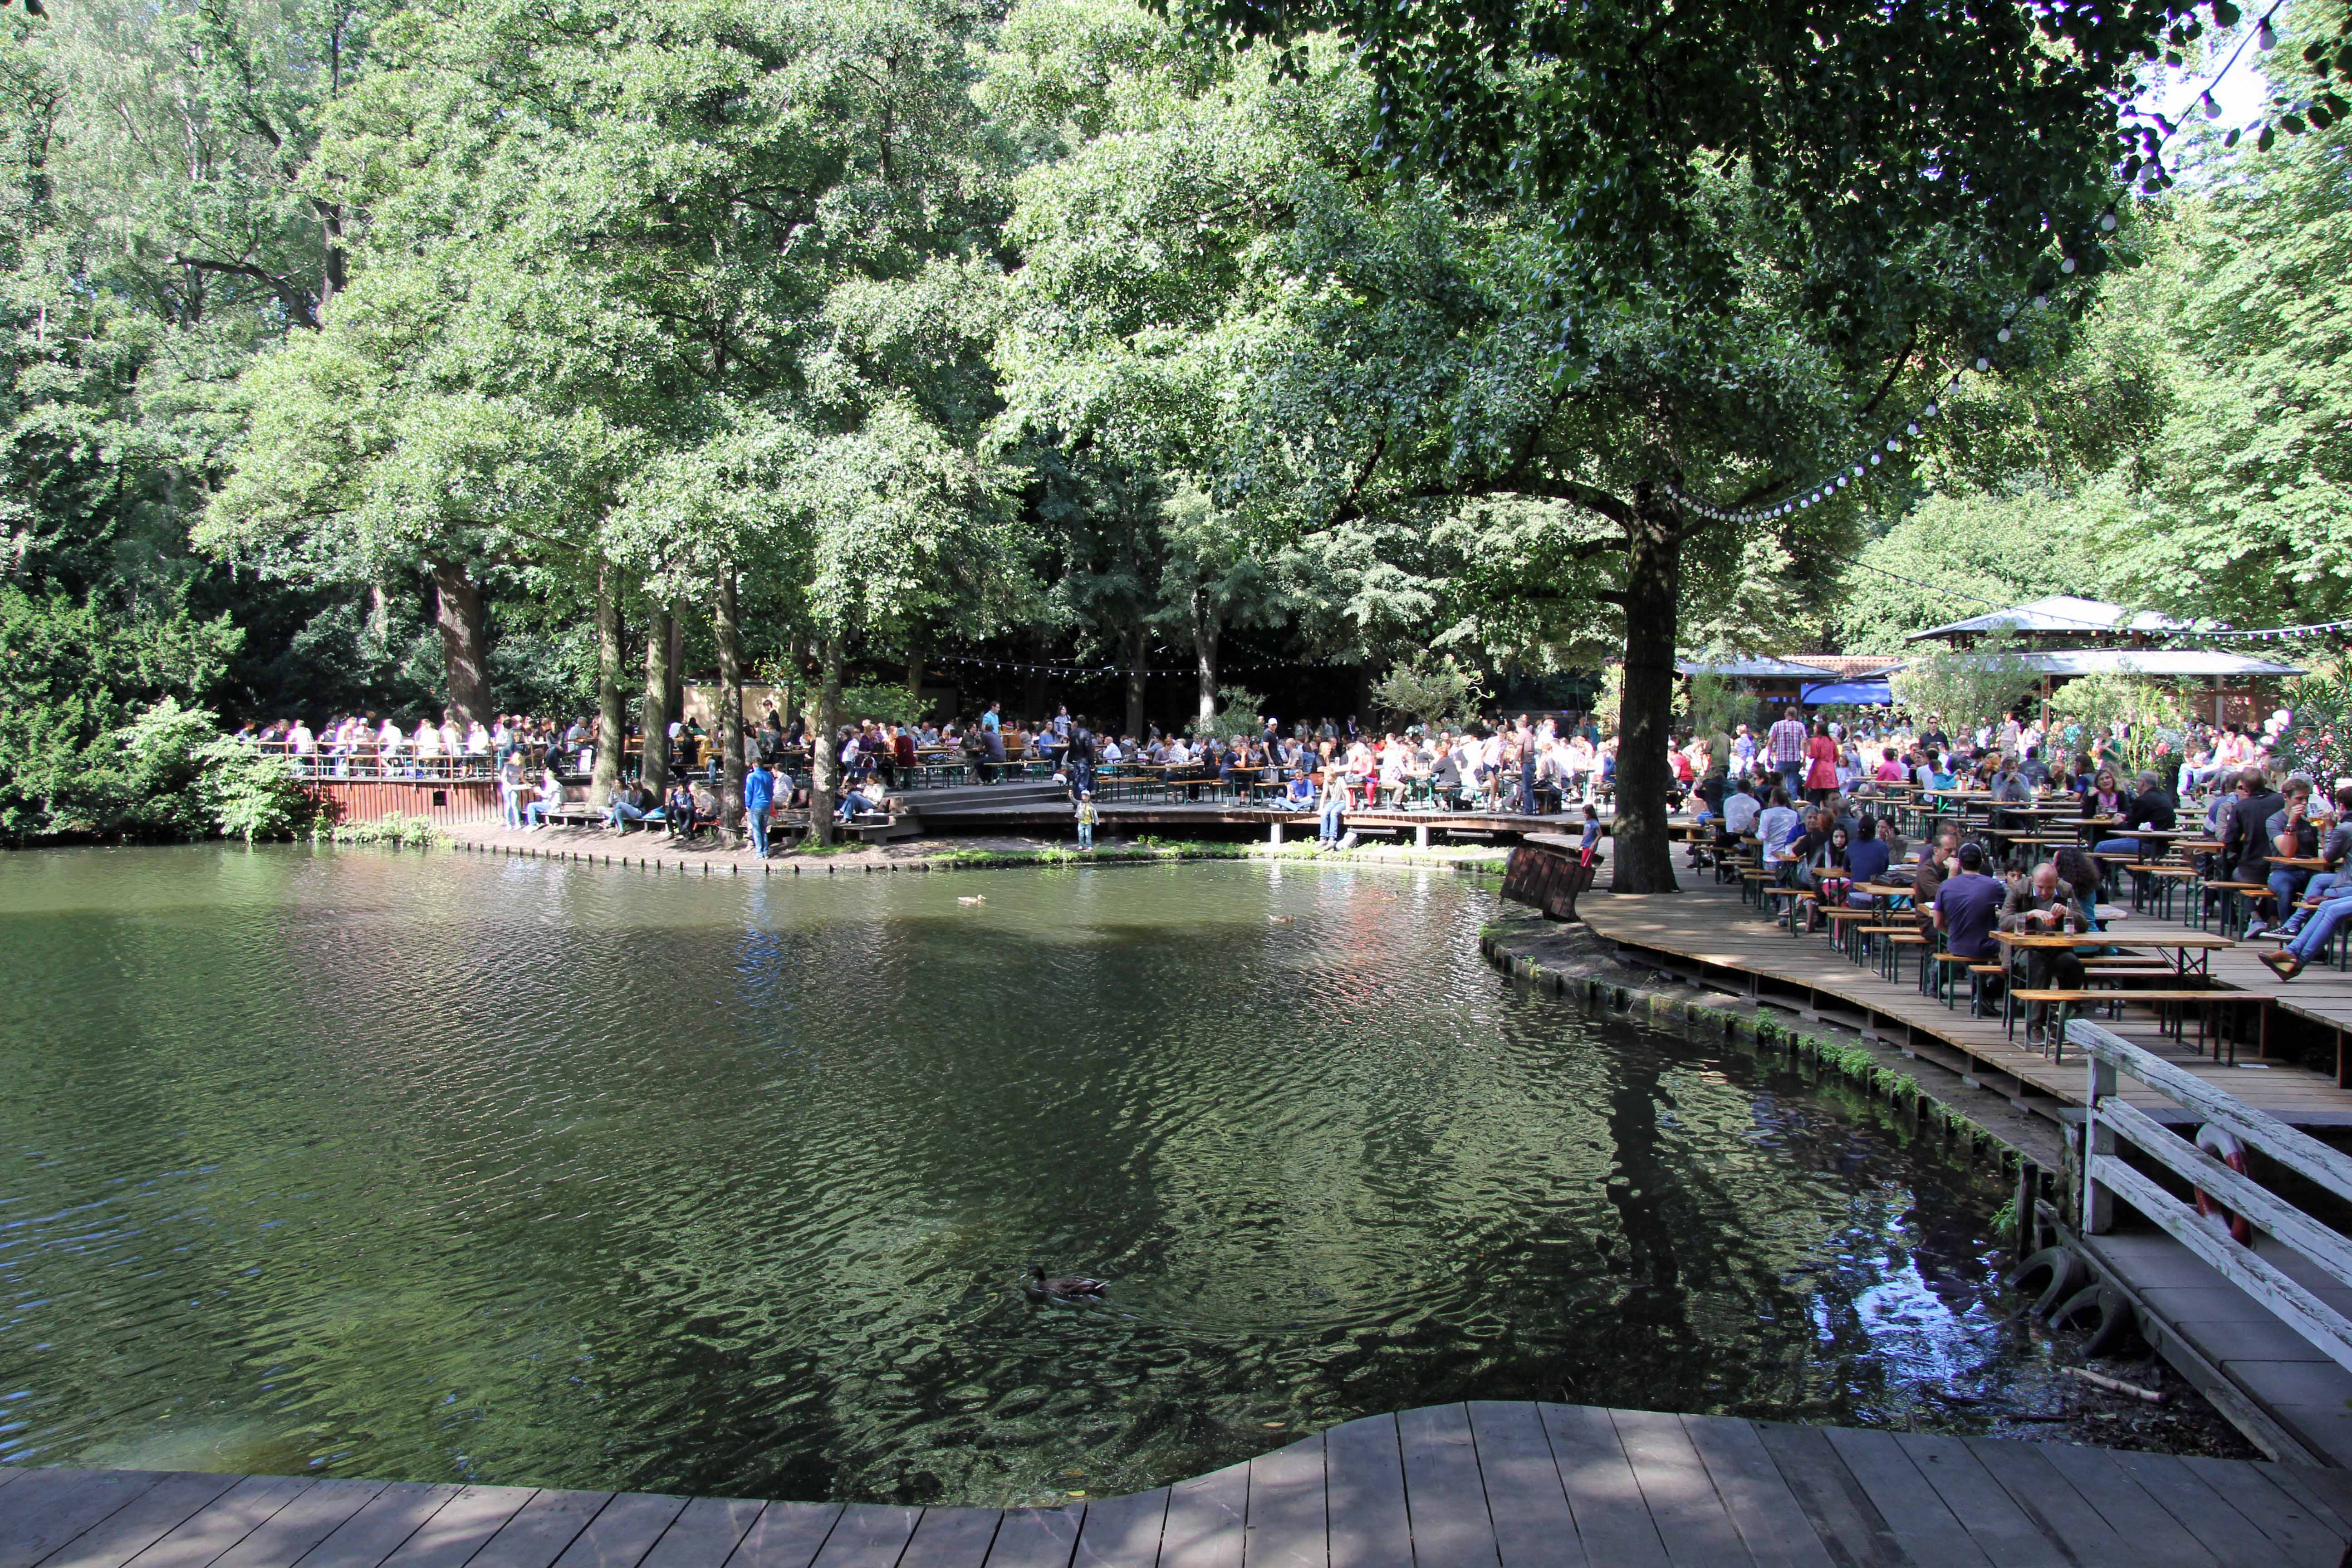 The Biergarten at Café am Neuen See in the Tiergarten in Berlin